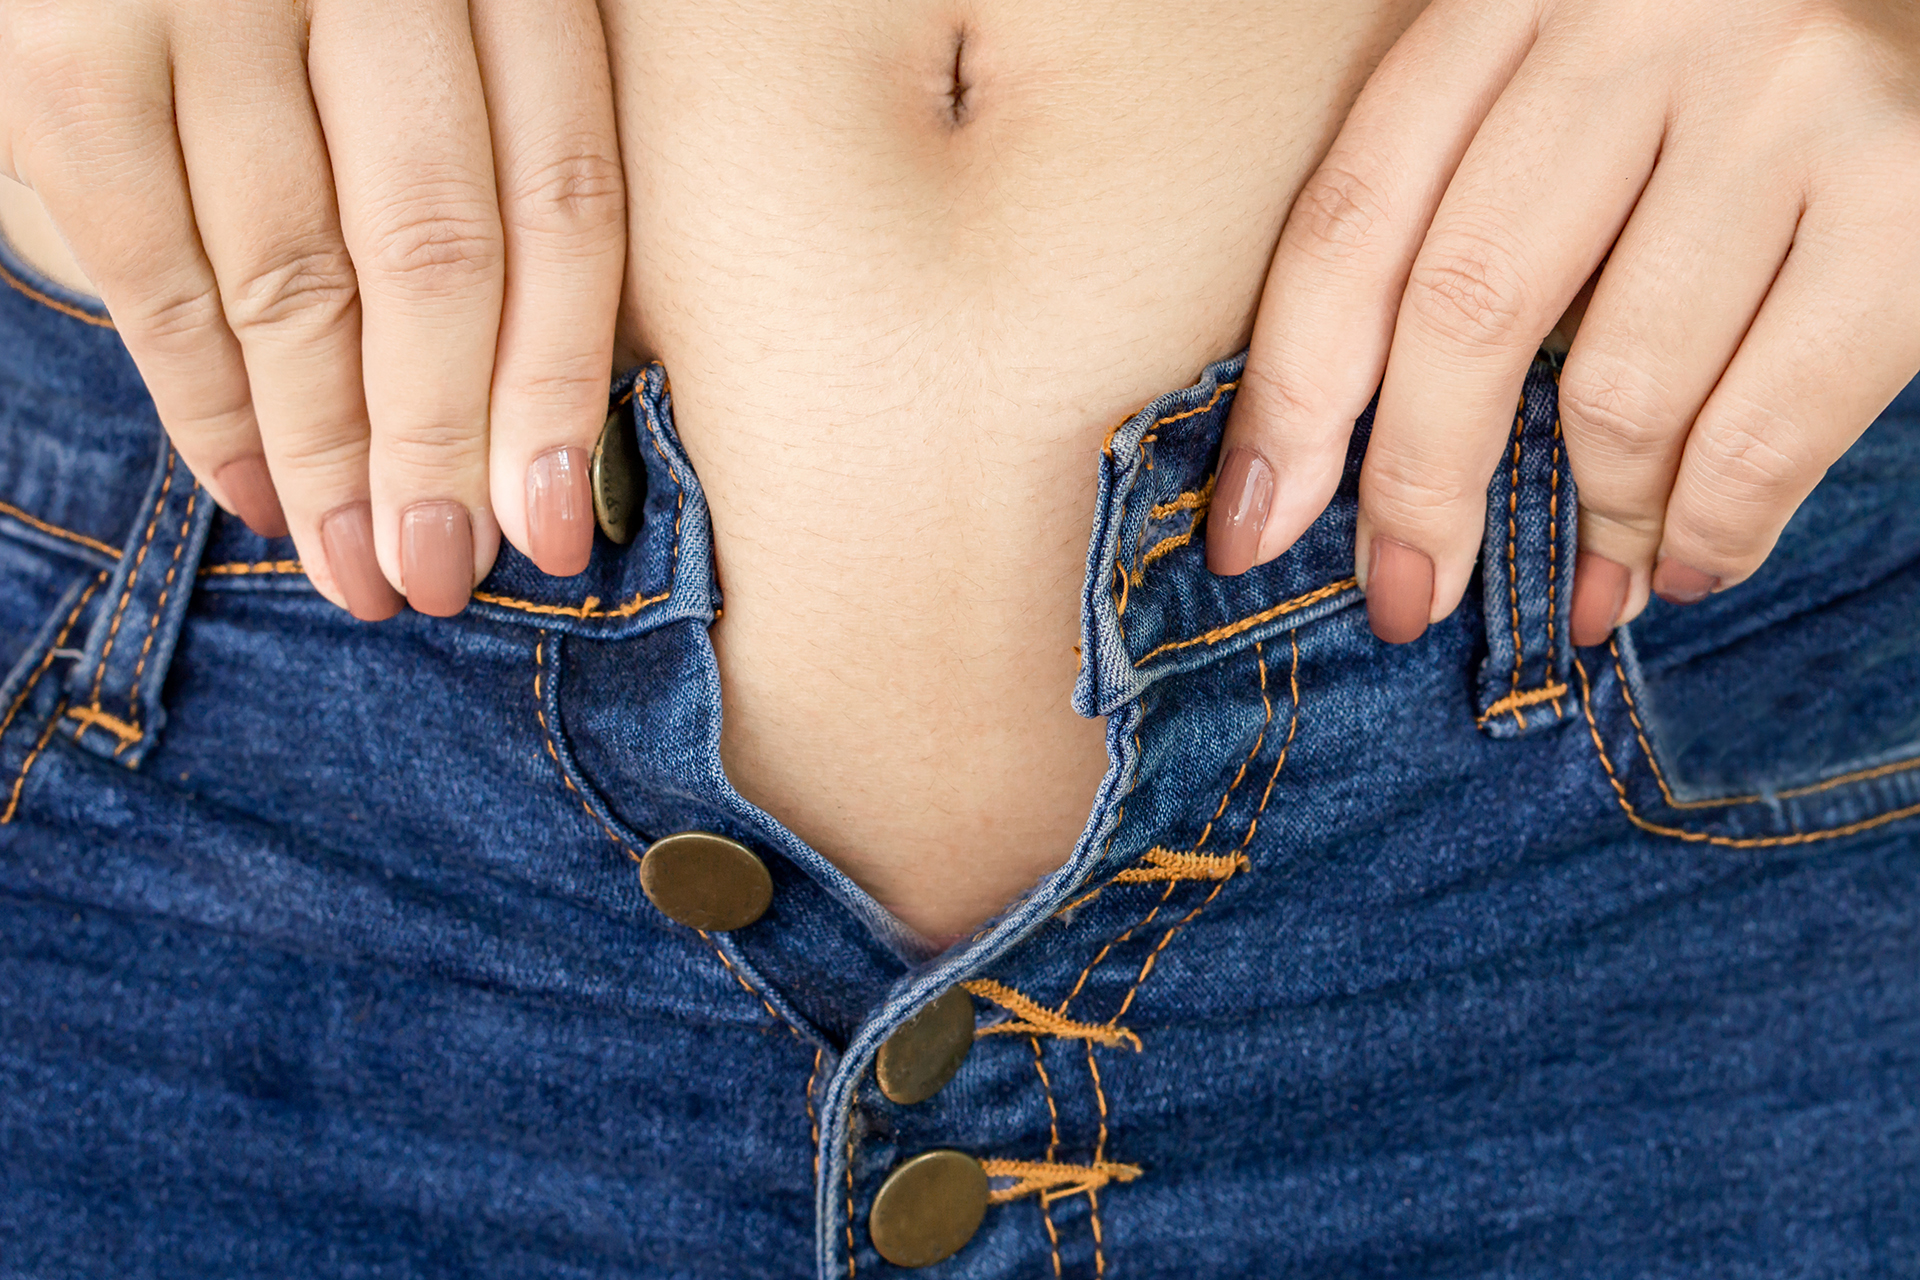 Woman trying to fasten too tight jeans